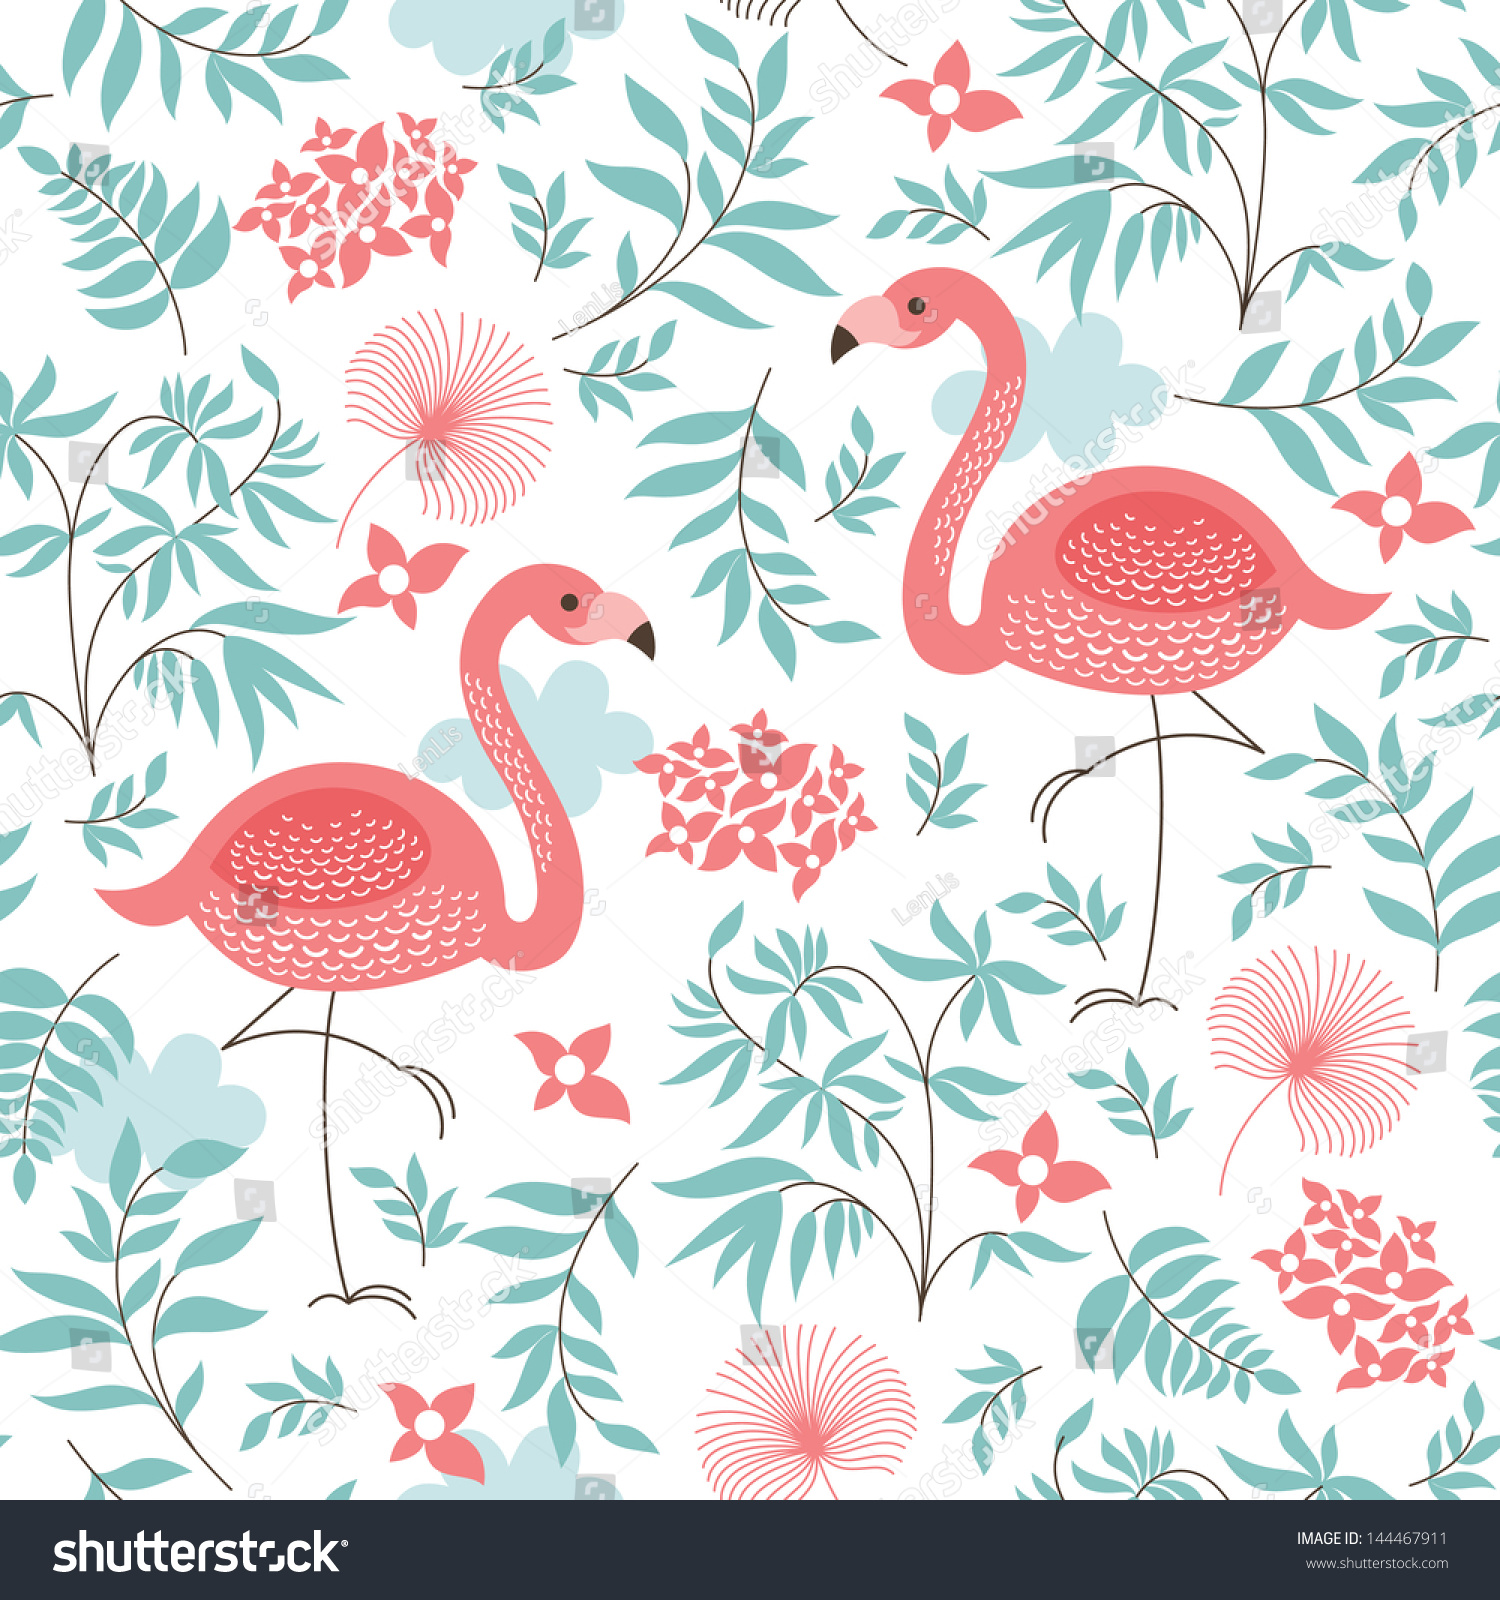 Seamless Pattern Pink Flamingo Stock Vector 144467911 Shutterstock